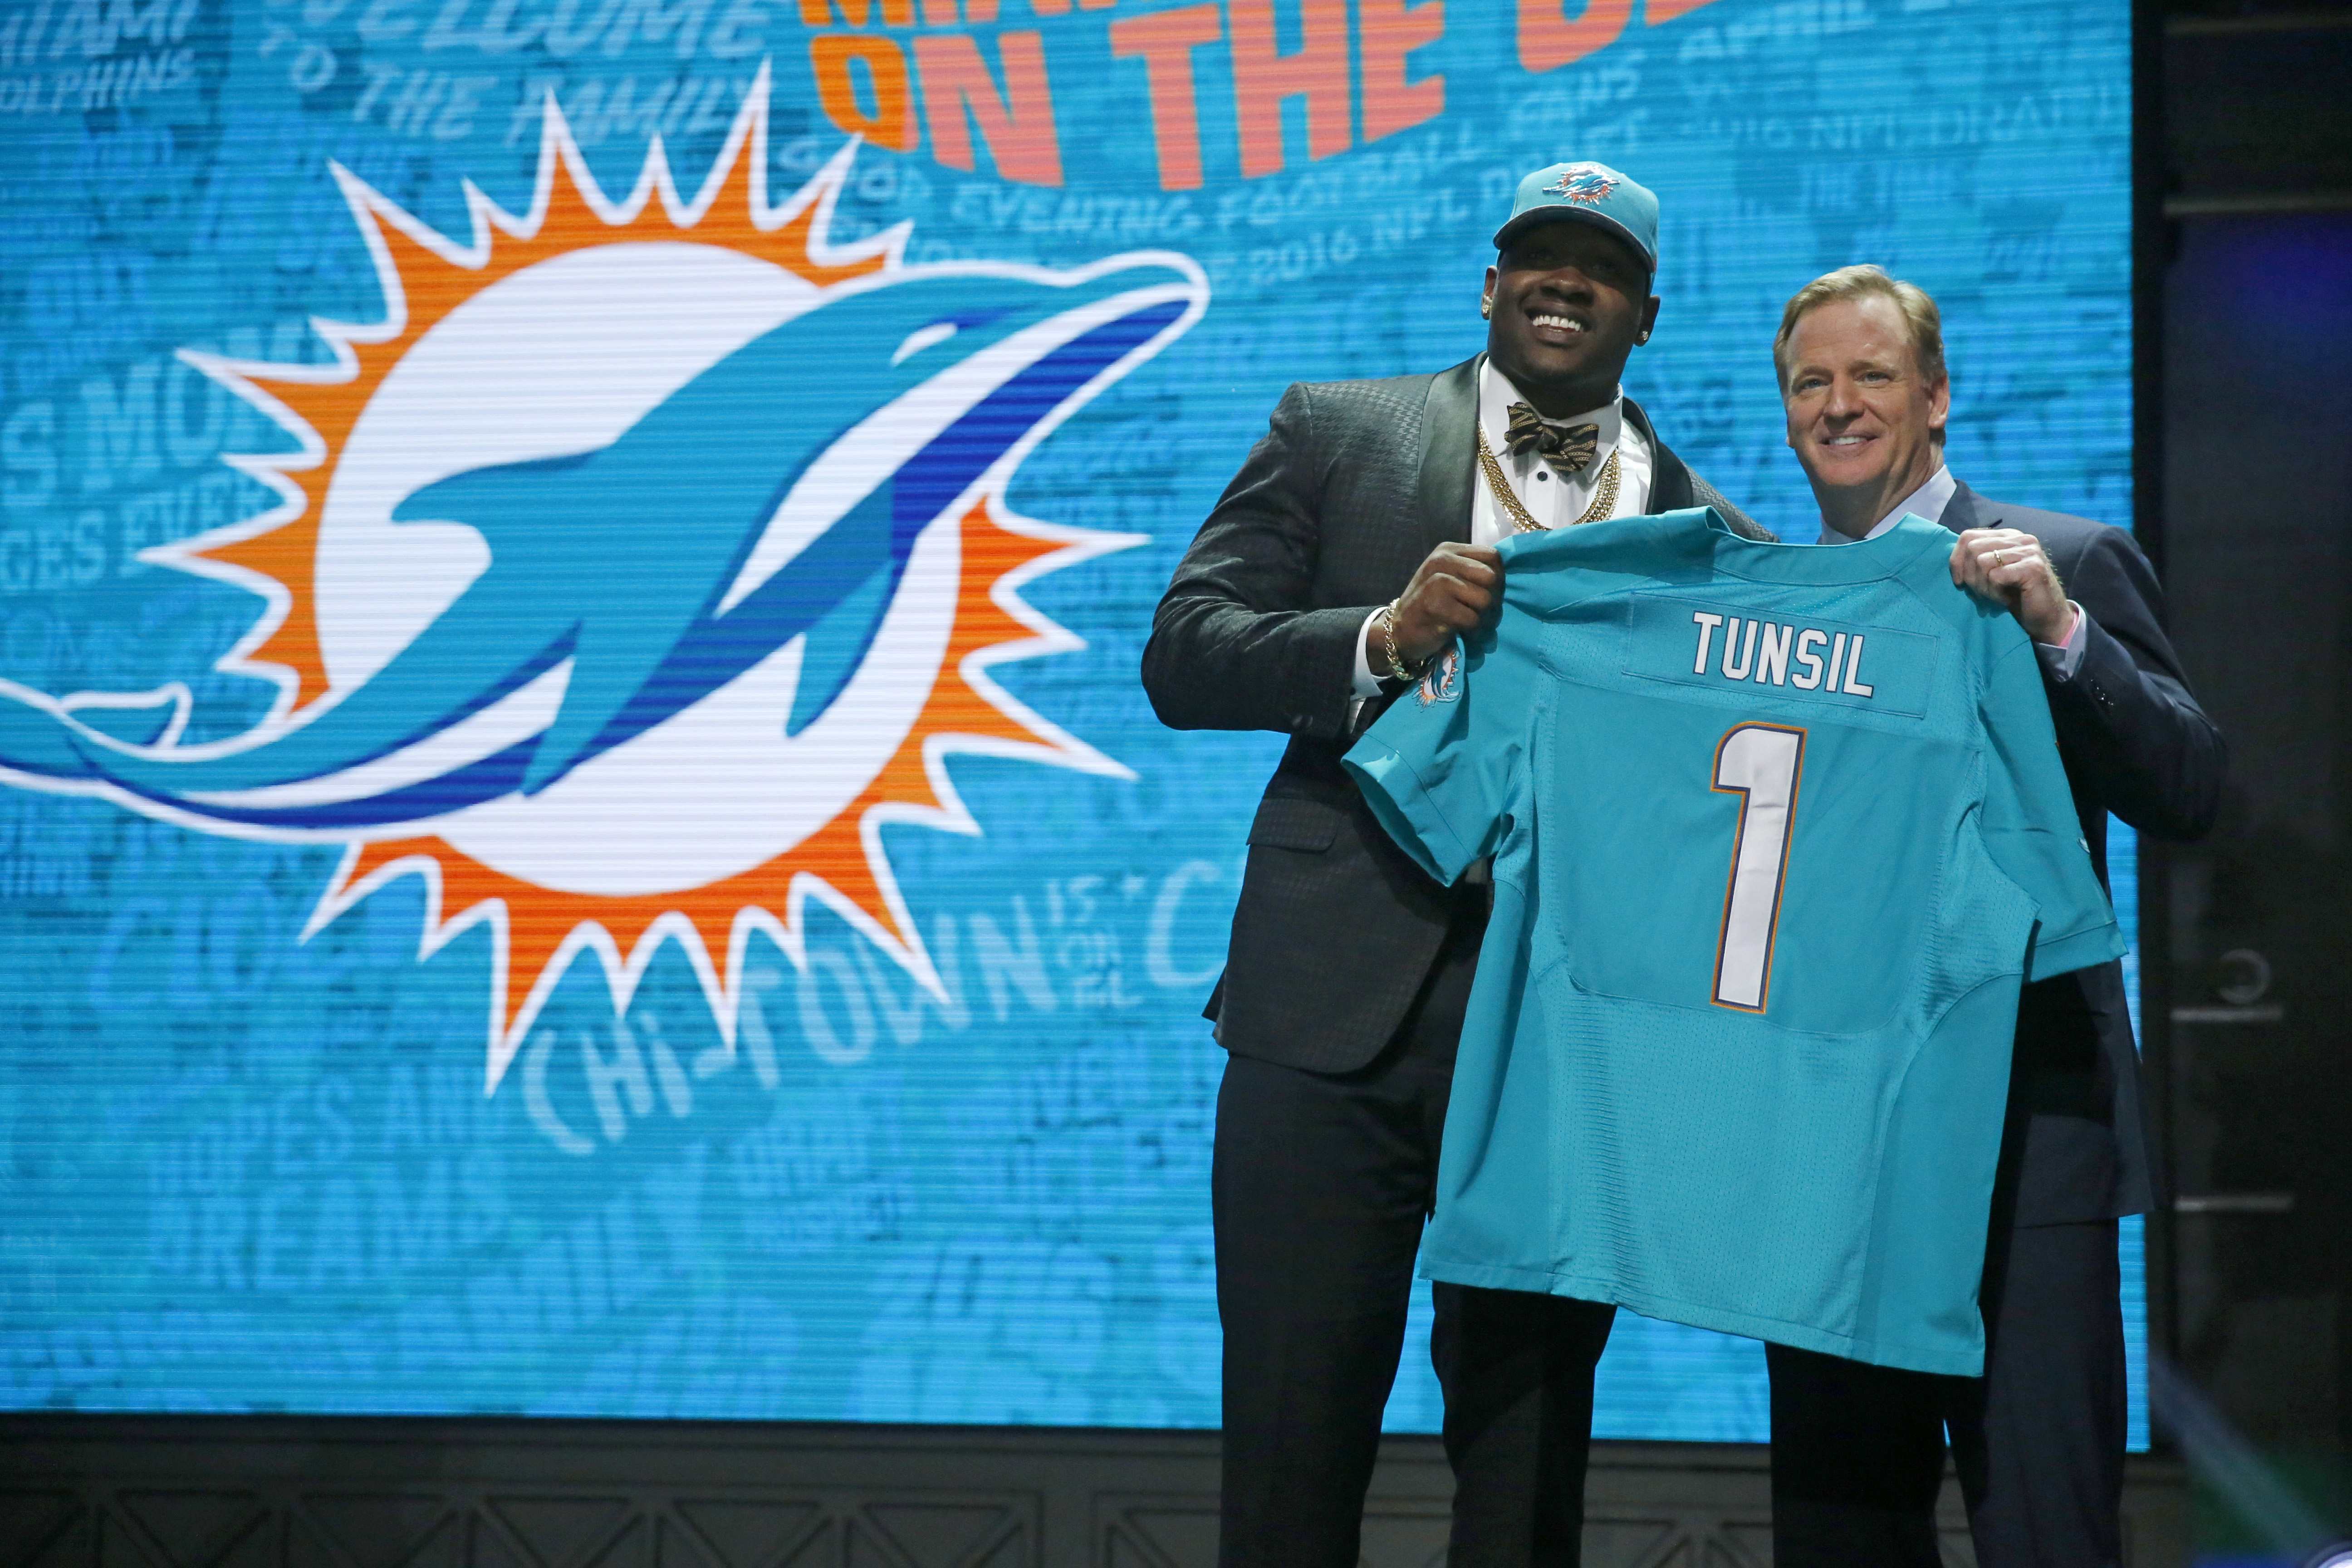 Mississippis Laremy Tunsil poses for photos with NFL commissioner Roger Goodell after being selected by the Miami Dolphins as the 13th pick in the first round of the 2016 NFL football draft, Thursday, April 28, 2016, in Chicago. (AP Photo/Charles Rex Arbo